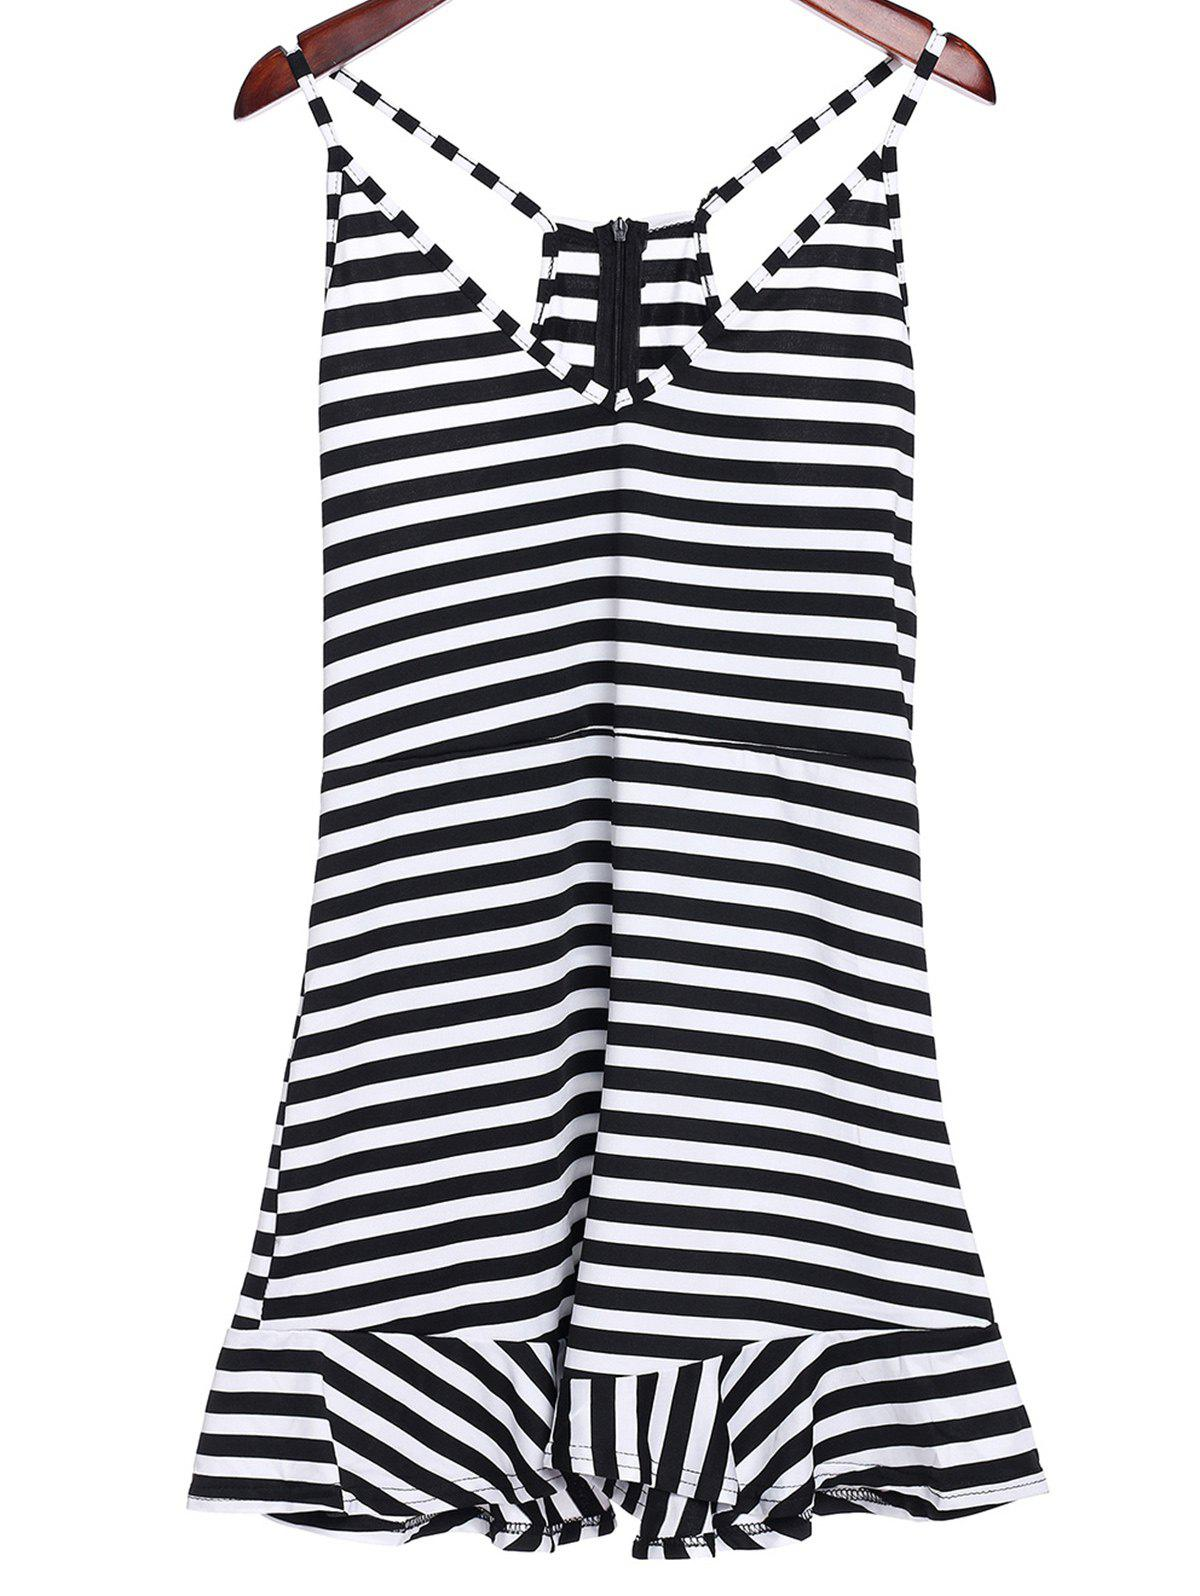 Sexy Women's Plunging Neckline Ruffled Striped Romper - WHITE/BLACK L